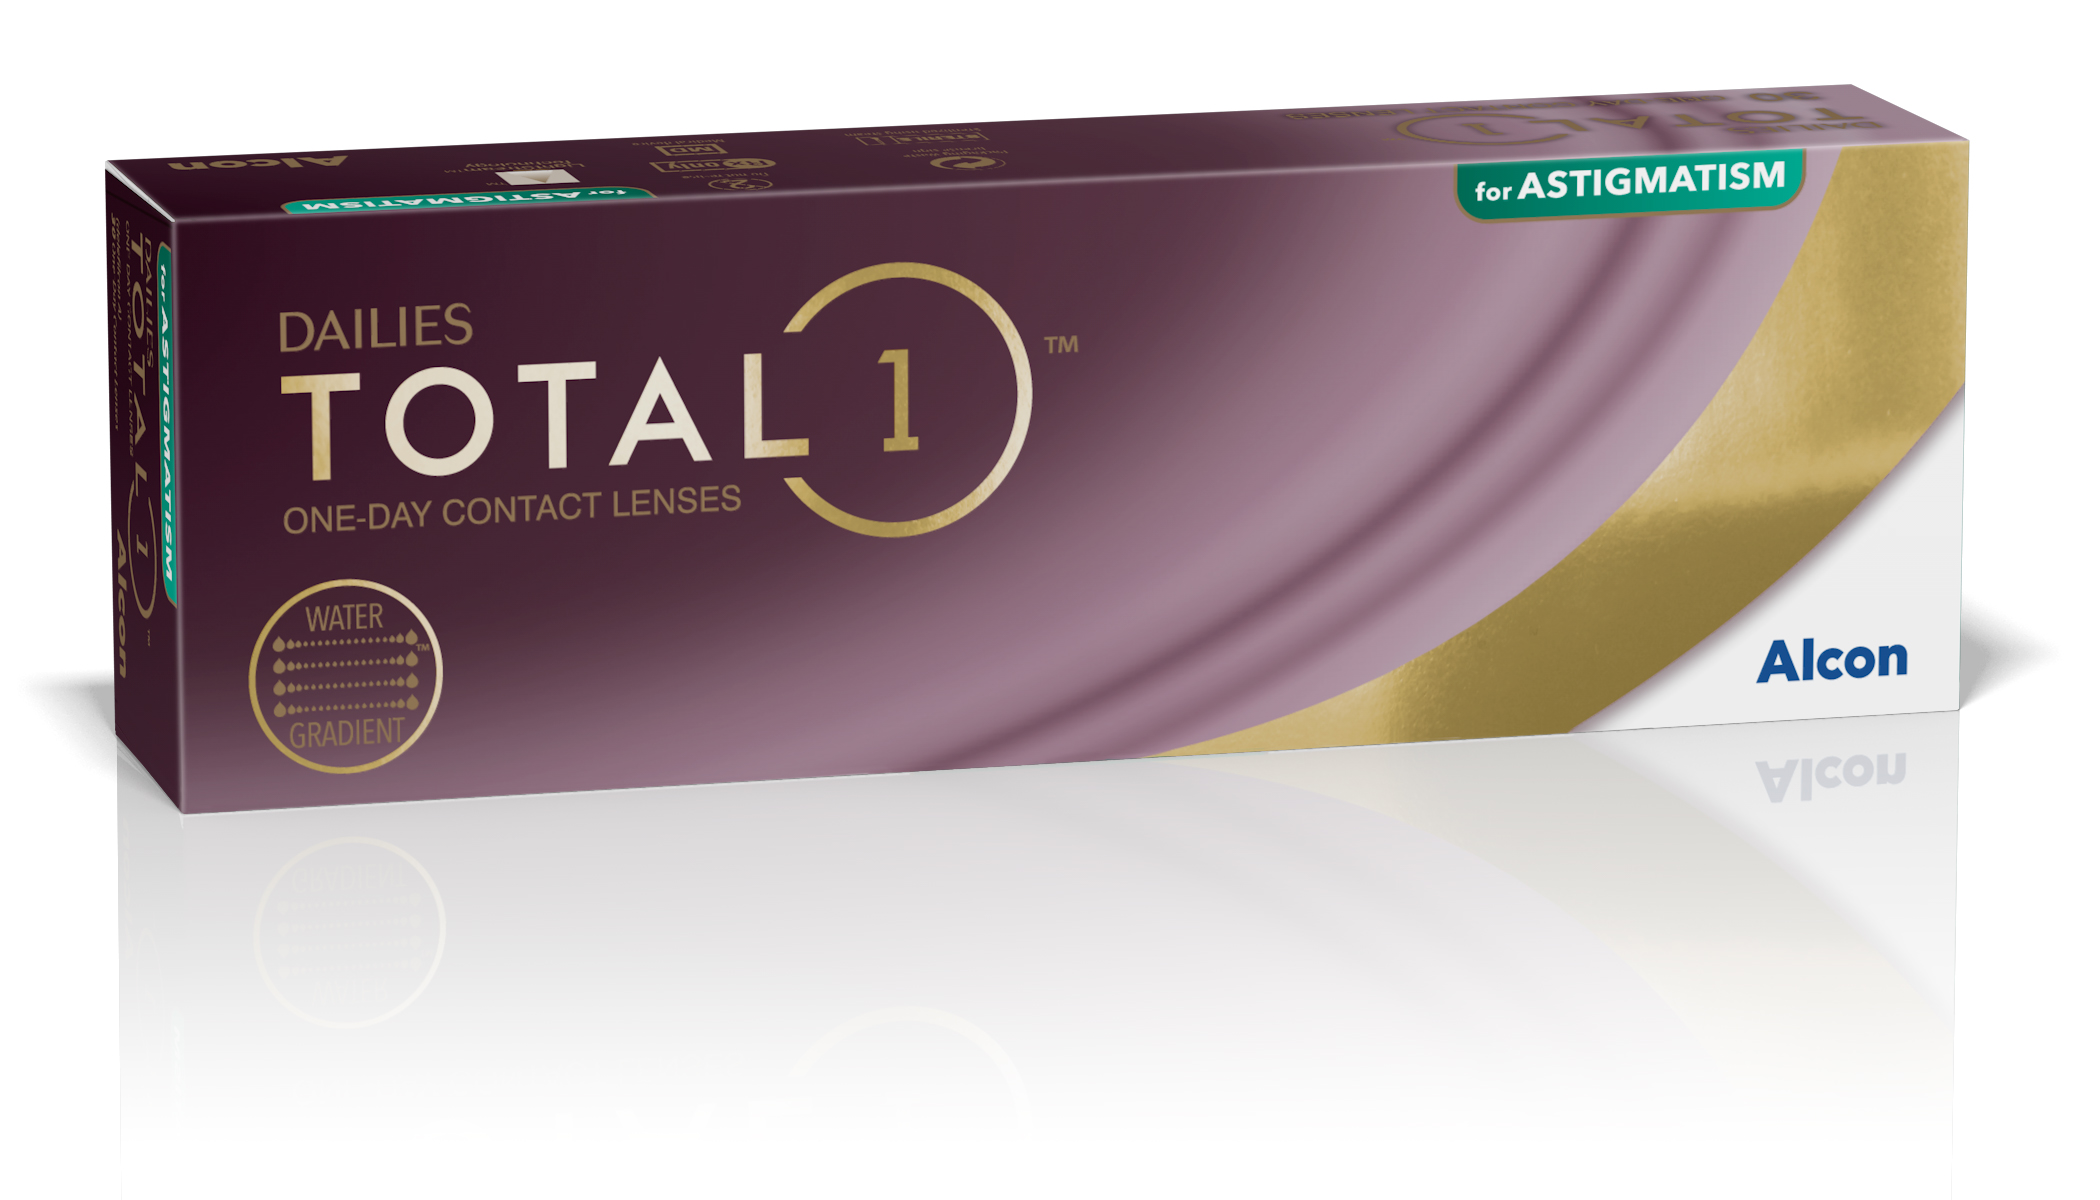 DAILIES TOTAL 1 Toric 30 product image